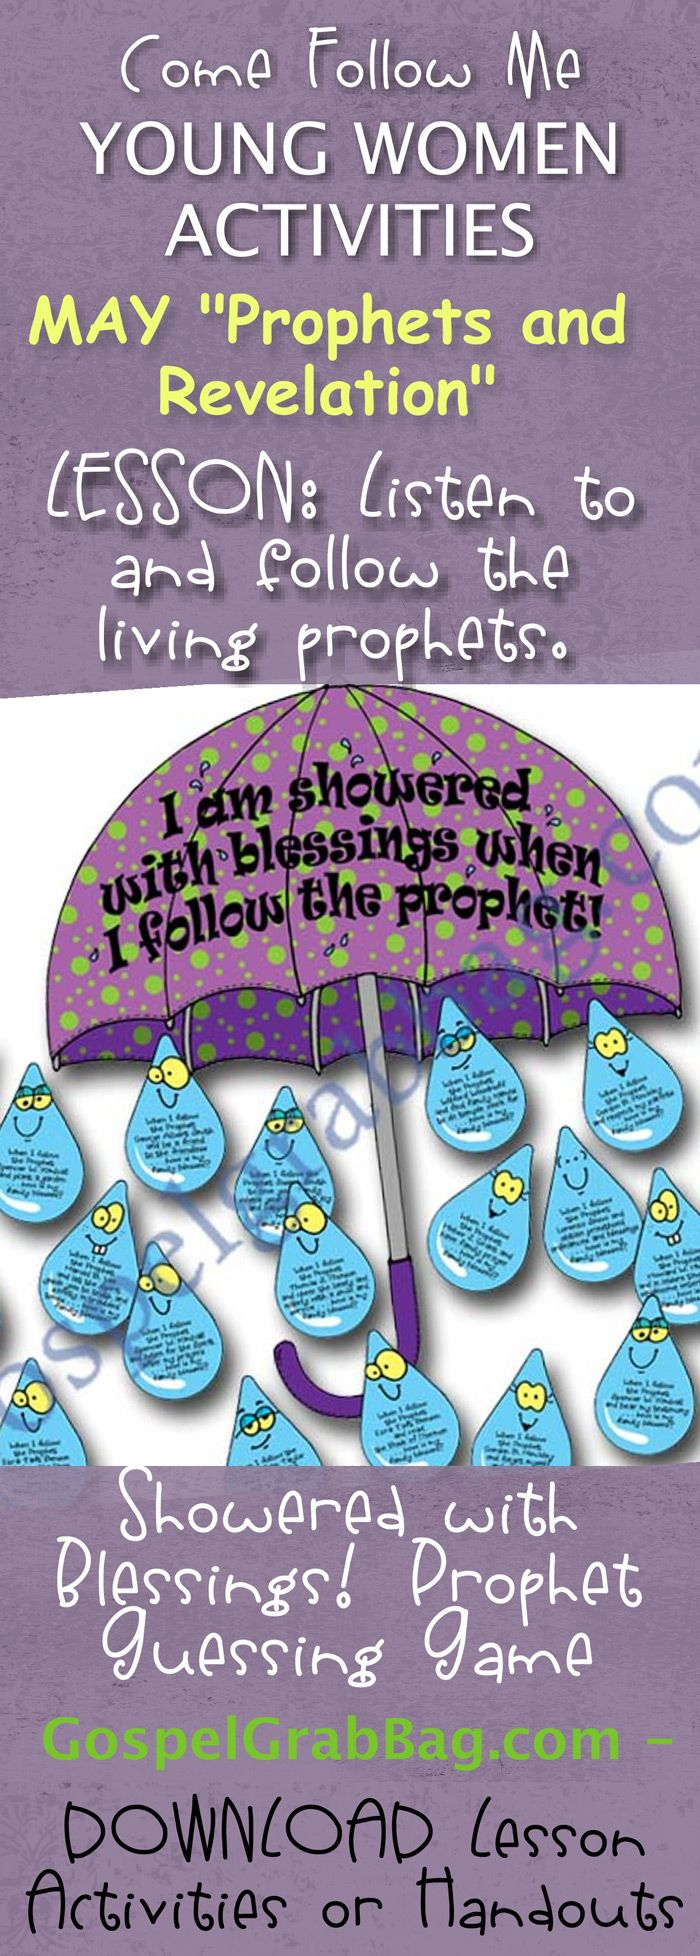 """PROPHETS –REVELATION: Come Follow Me – LDS Young Women Activities, MAY Theme: """"Prophets and Revelation"""", LESSON: Why is it important to listen to and follow the living prophets? handout for every lesson, POST-AND-PRESENT: Showered with Blessings – Follow the Prophet Guessing Game, download from gospelgrabbag.com"""